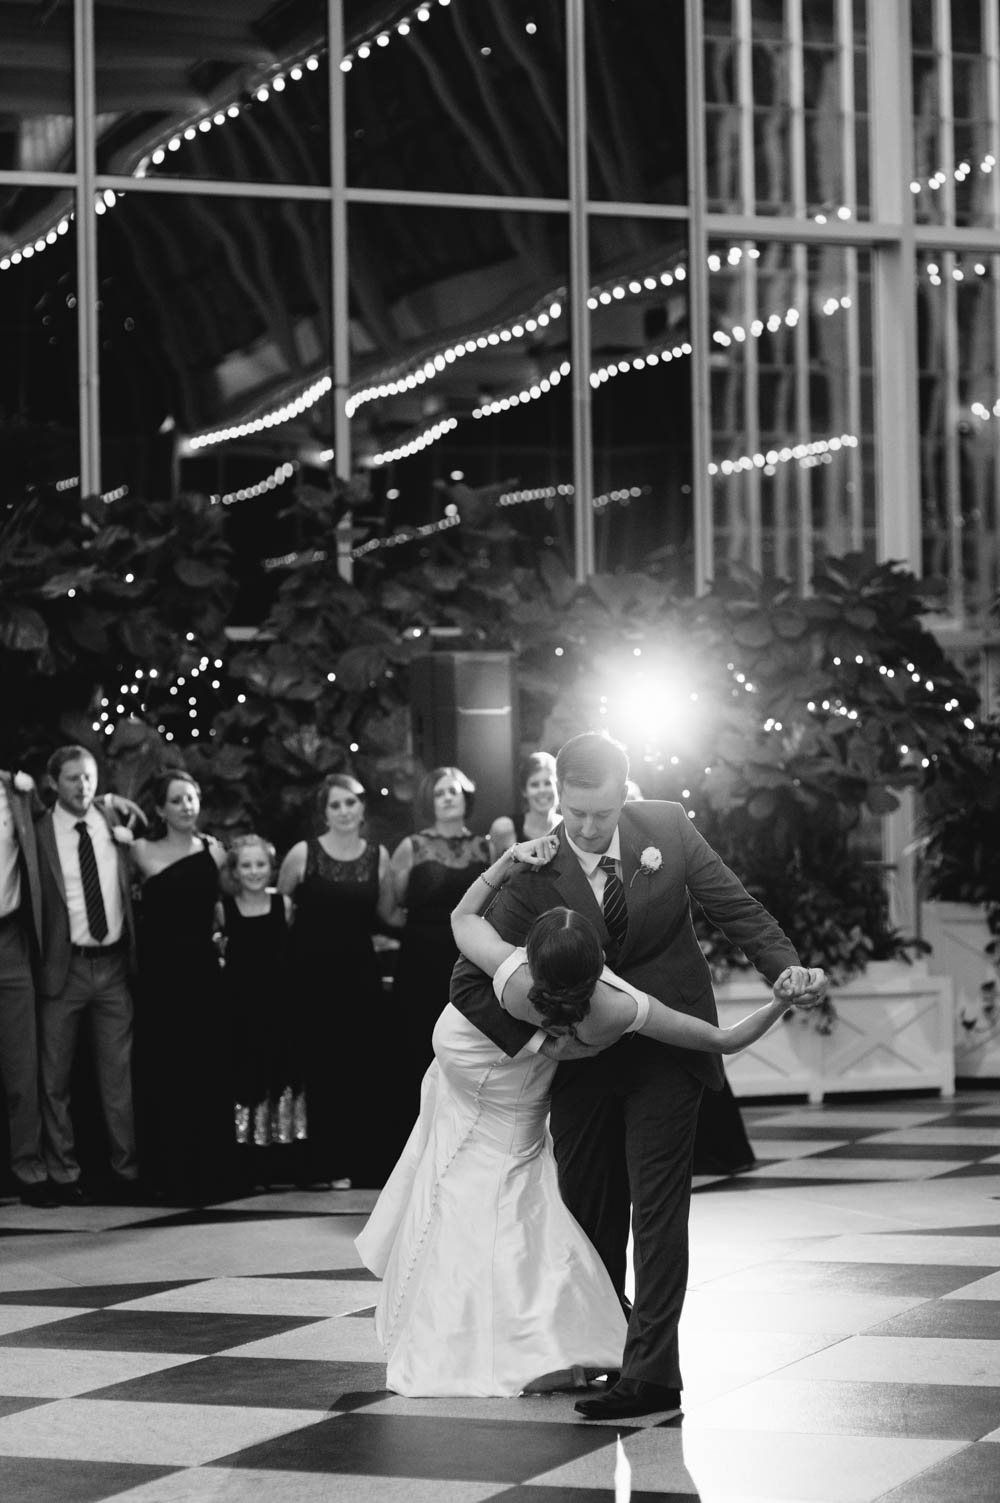 wintergarden-wedding-pittsburgh-122.jpg